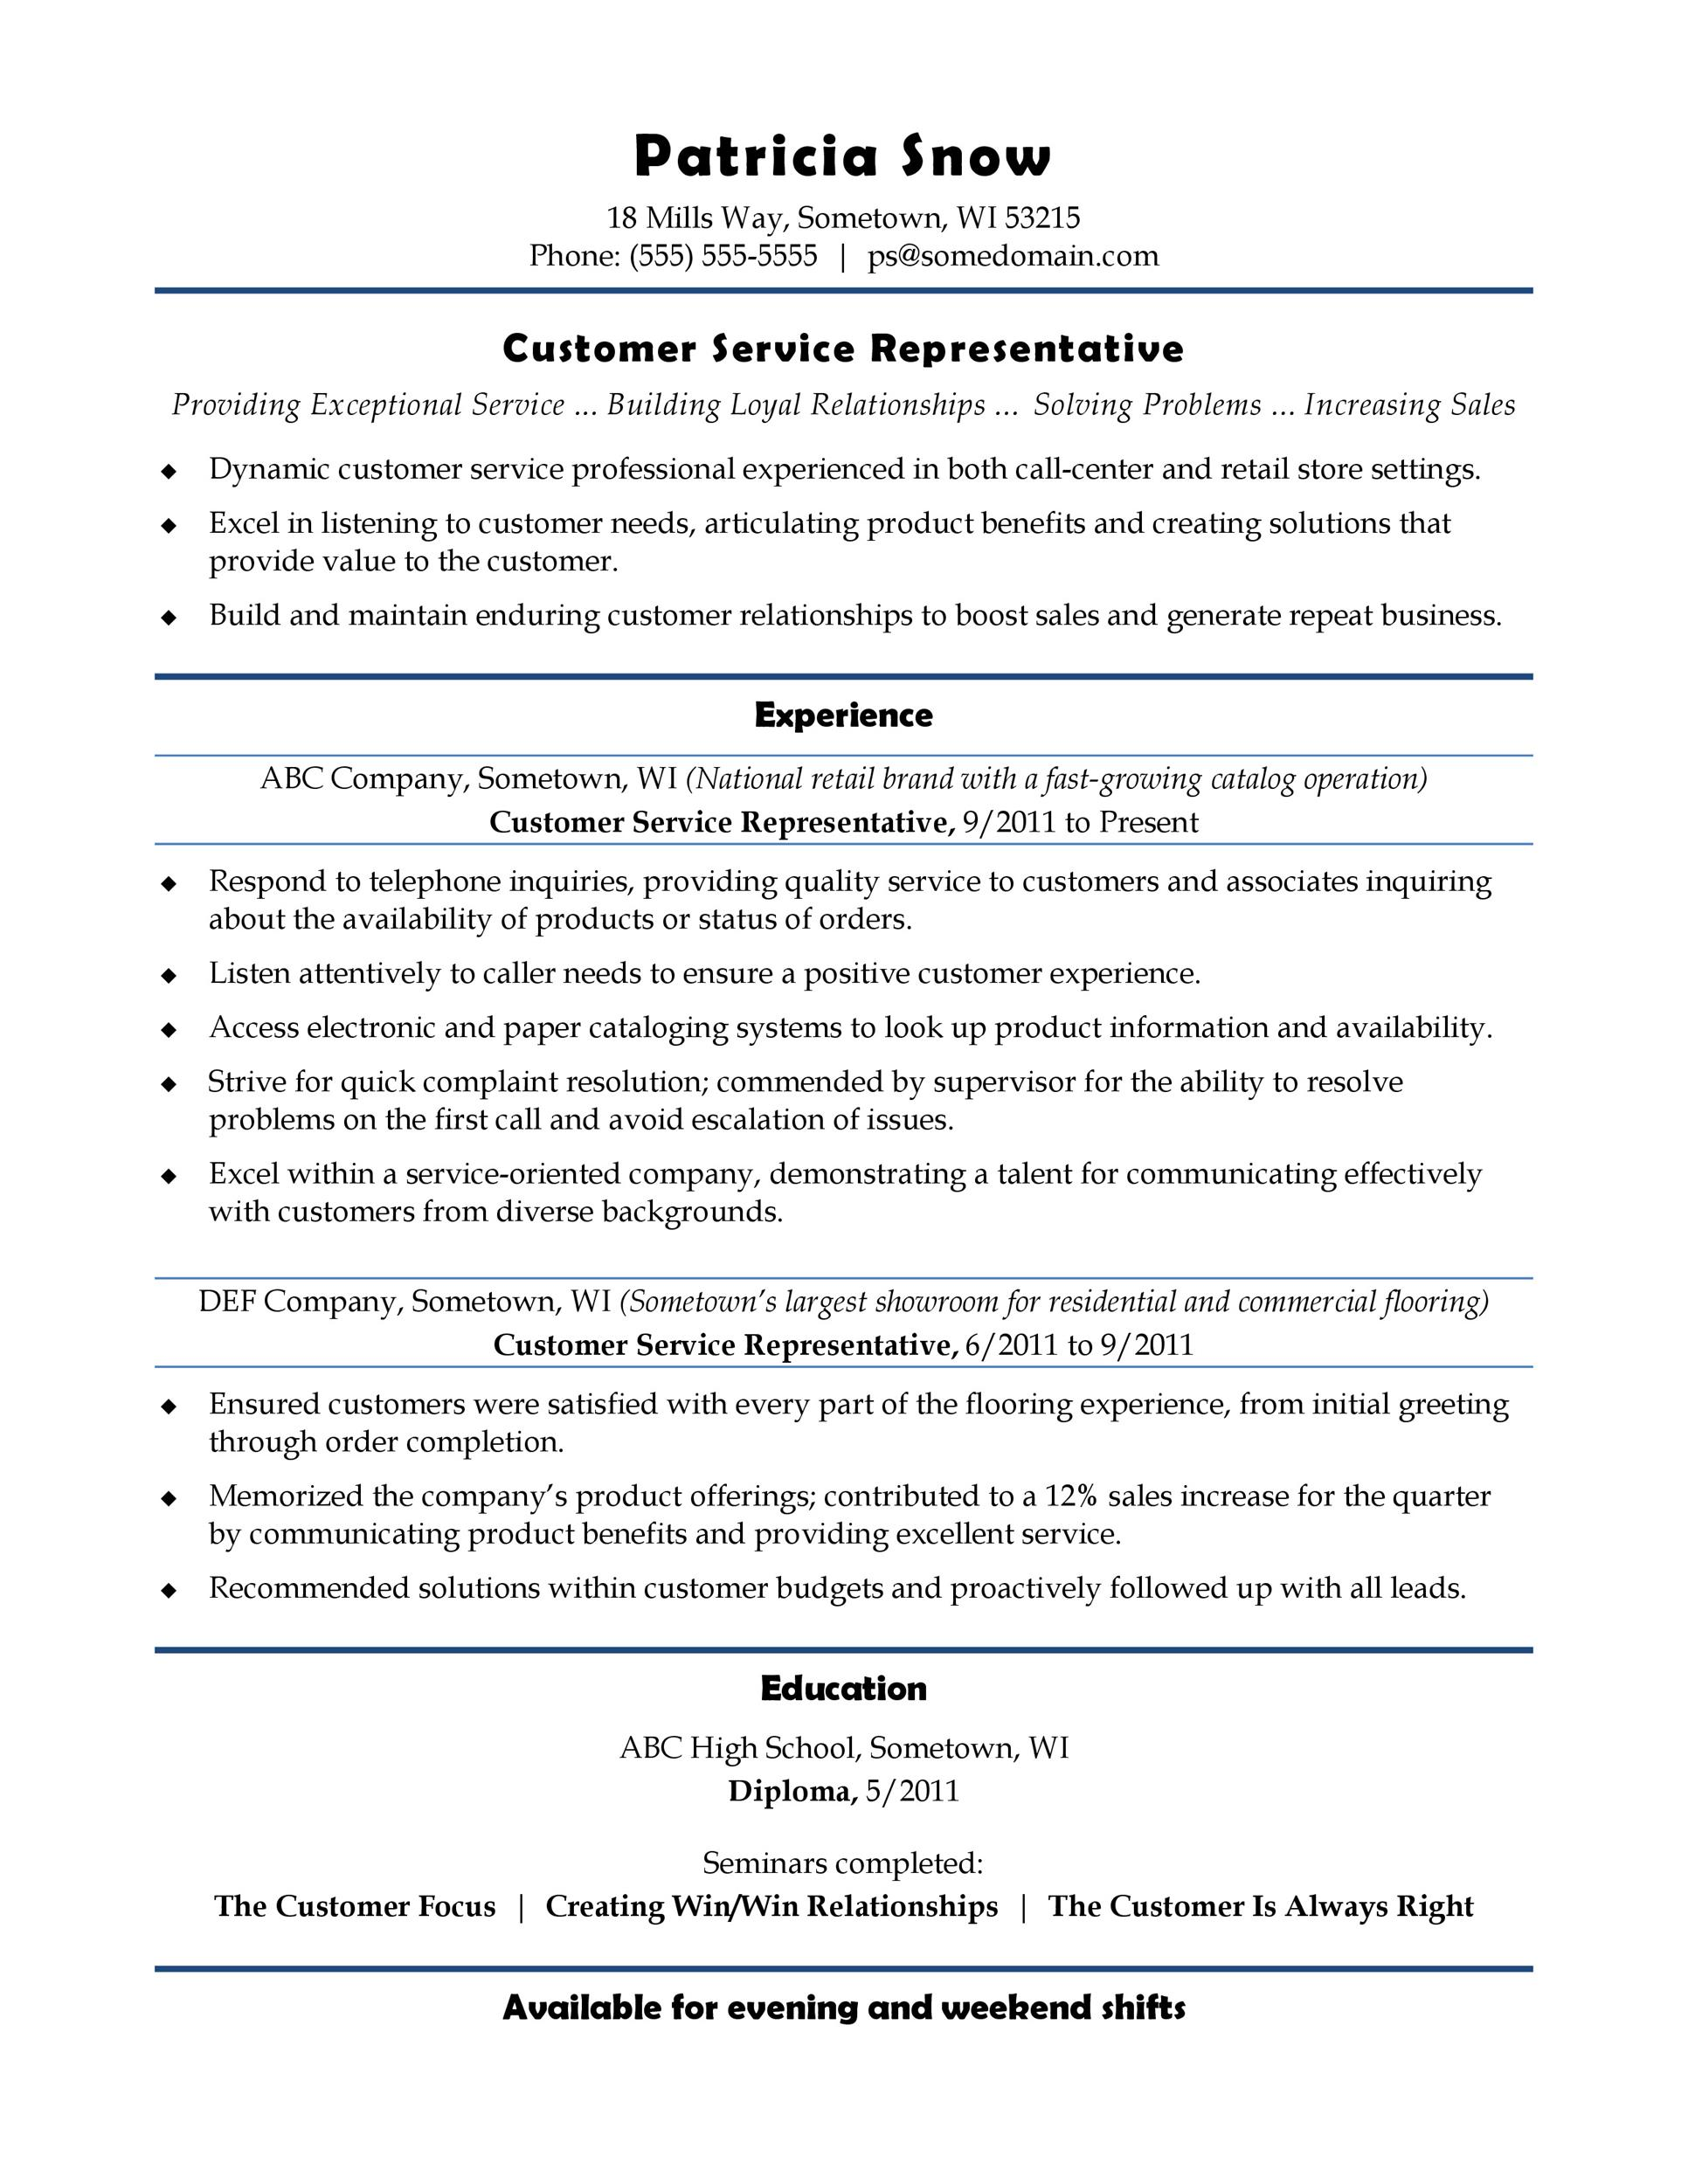 customer service resume template 02 - Customer Service Resumes Templates